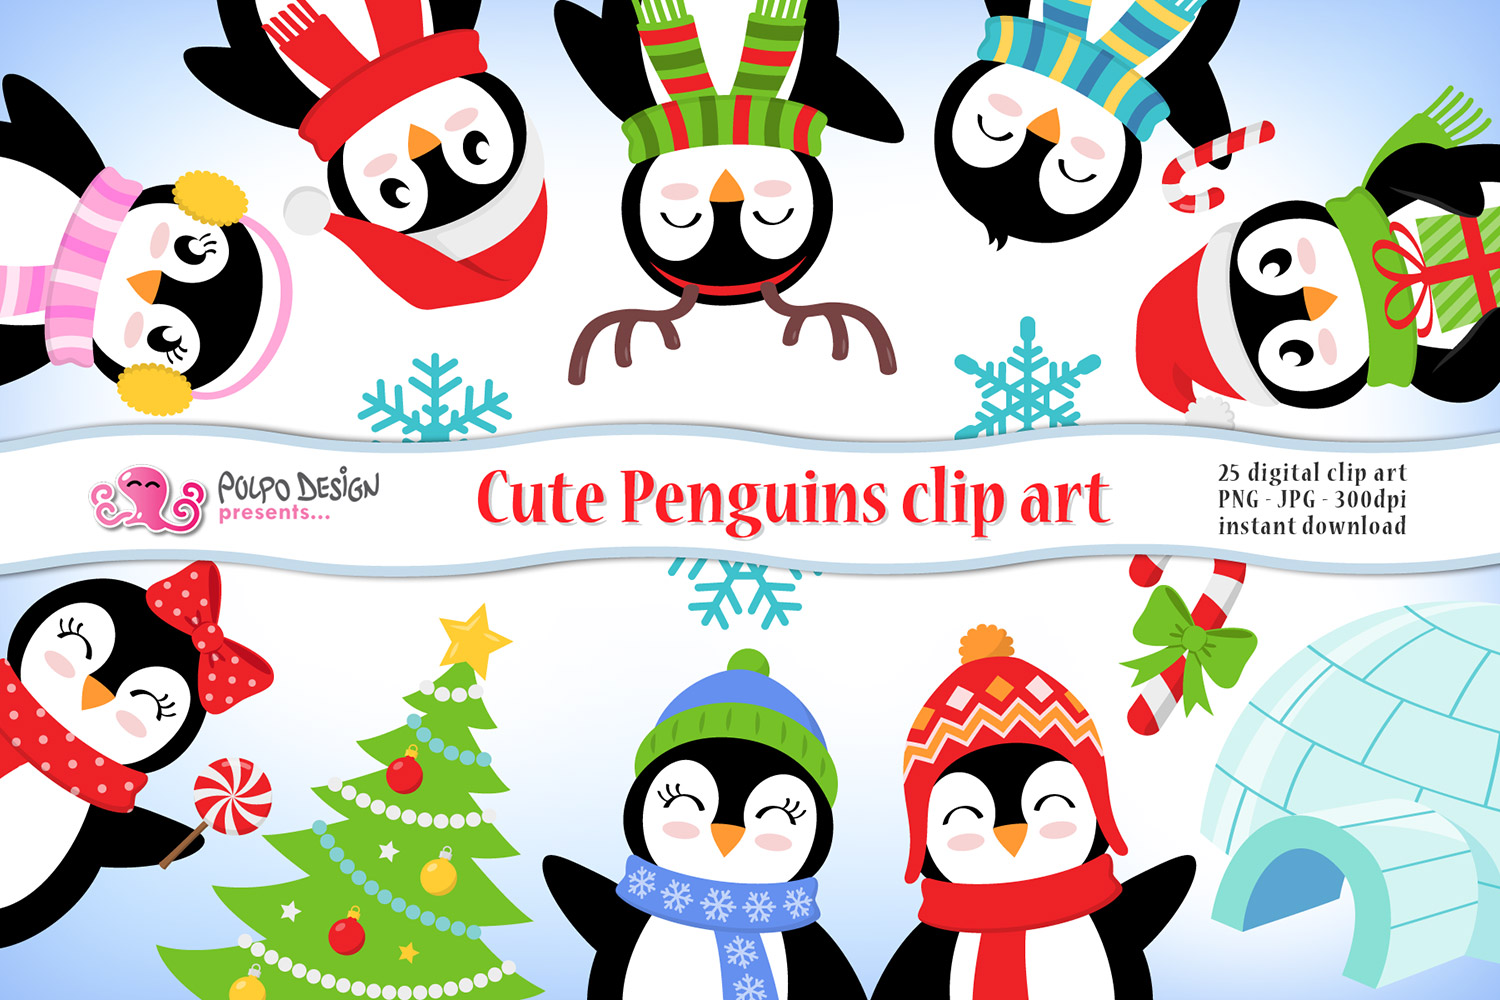 Cute Penguins clipart. 25 digital clip art..